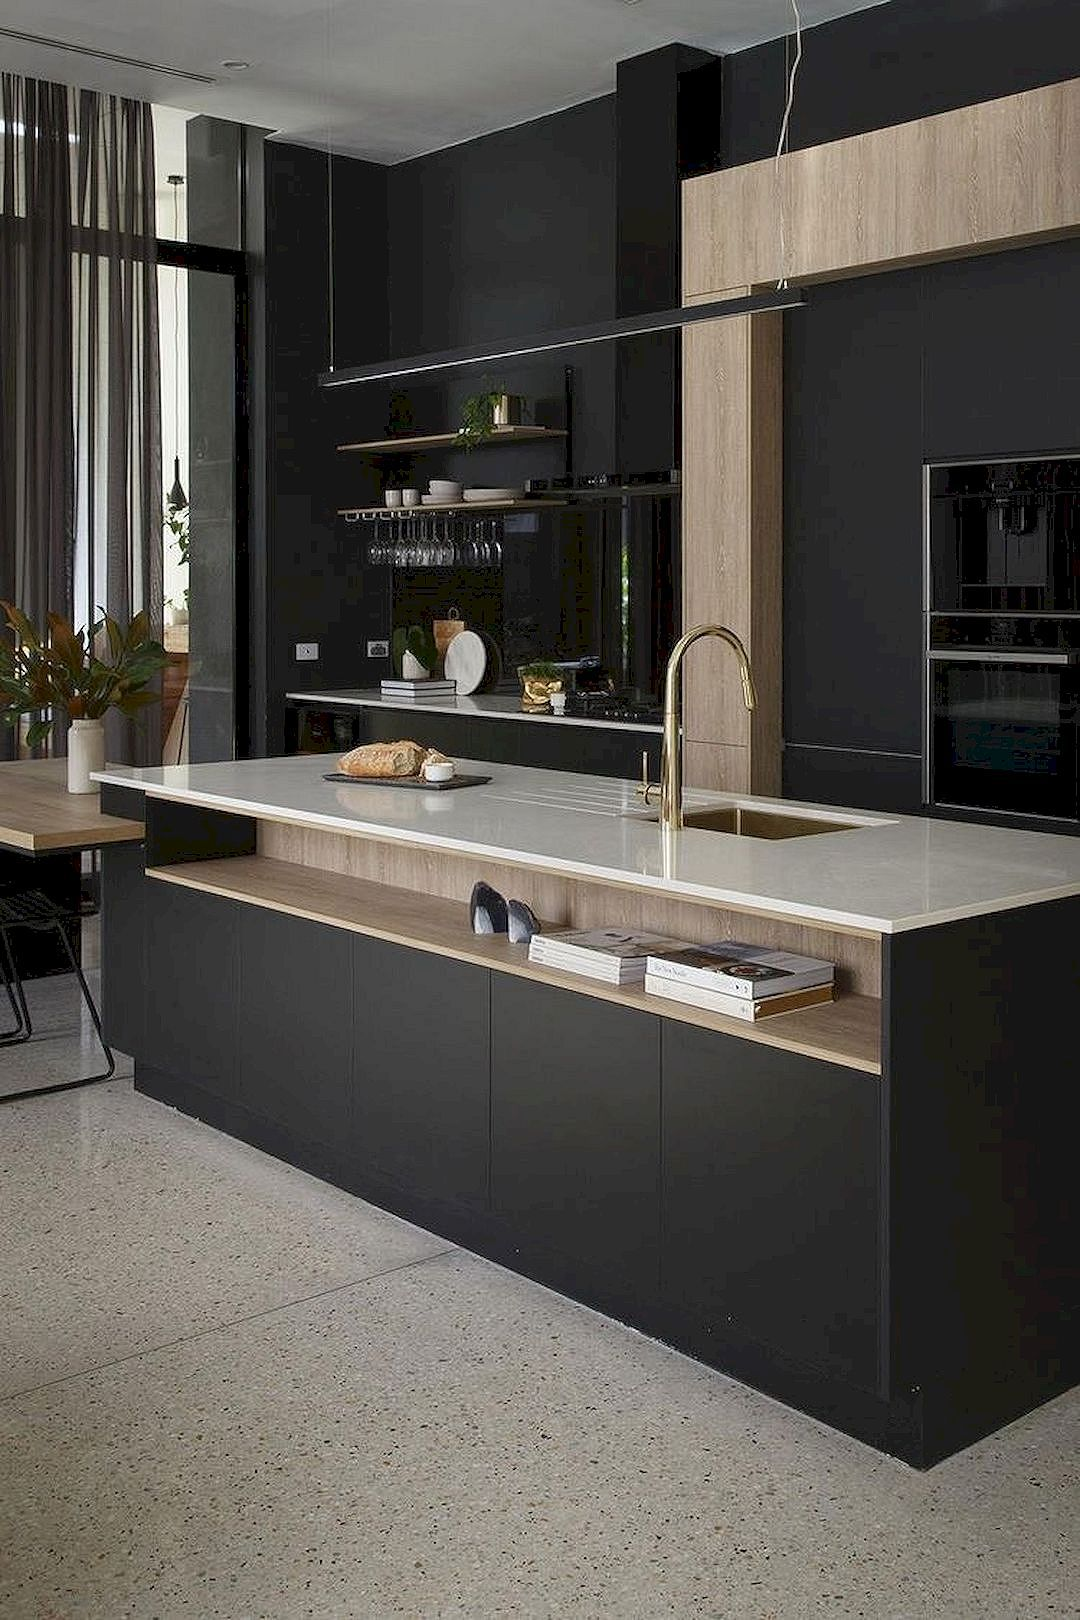 12 Nice Ideas for Your Modern Kitchen